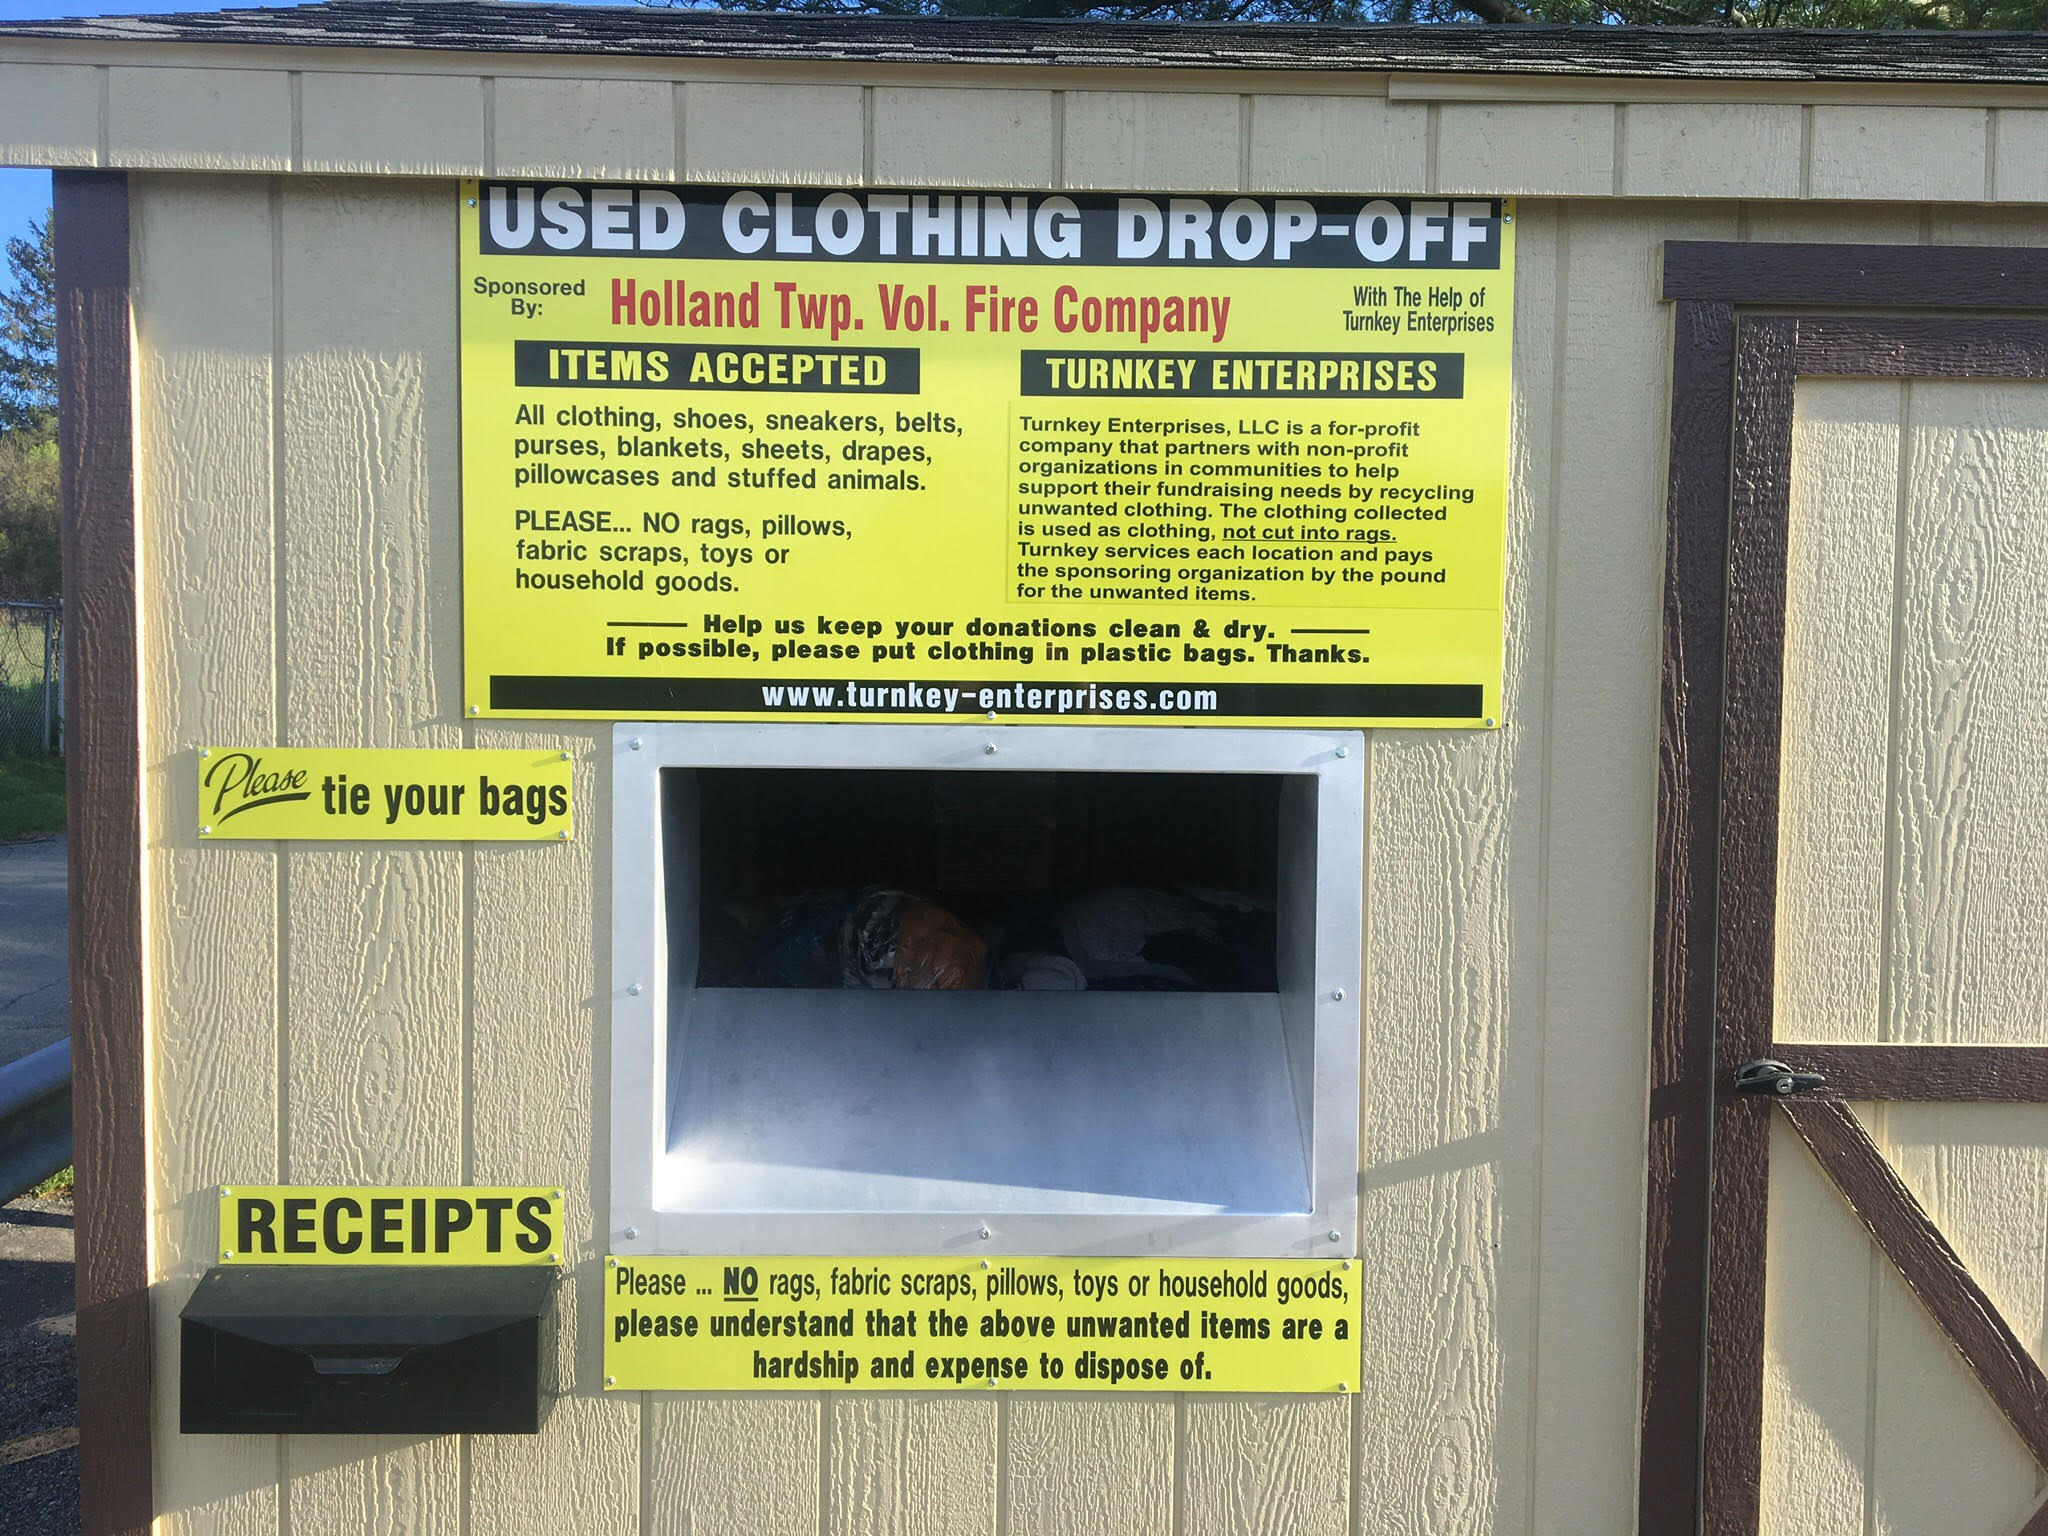 This box is located in the parking lot of the Holland Township Free Public Library and it benefits the Holland Township Volunteer Fire Company.   129 Spring Mills Rd, Milford, NJ 08848